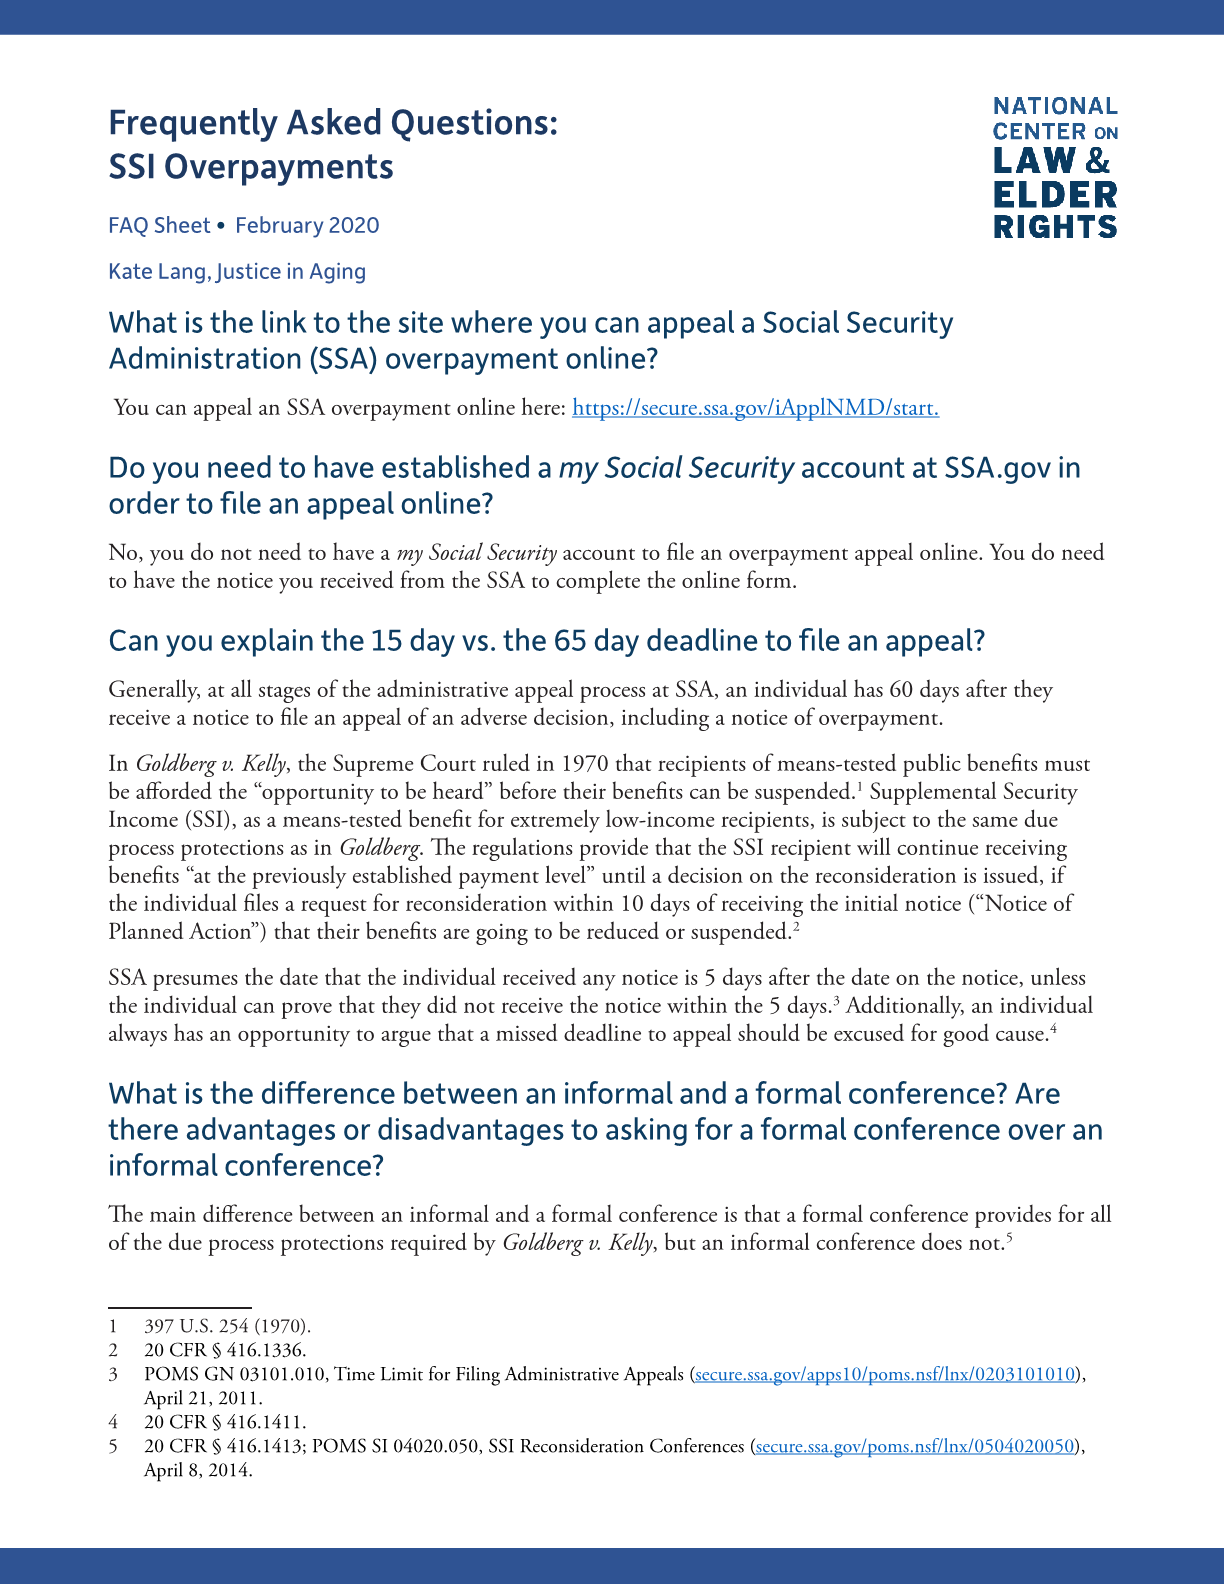 Frequently Asked Questions: SSI Overpayments